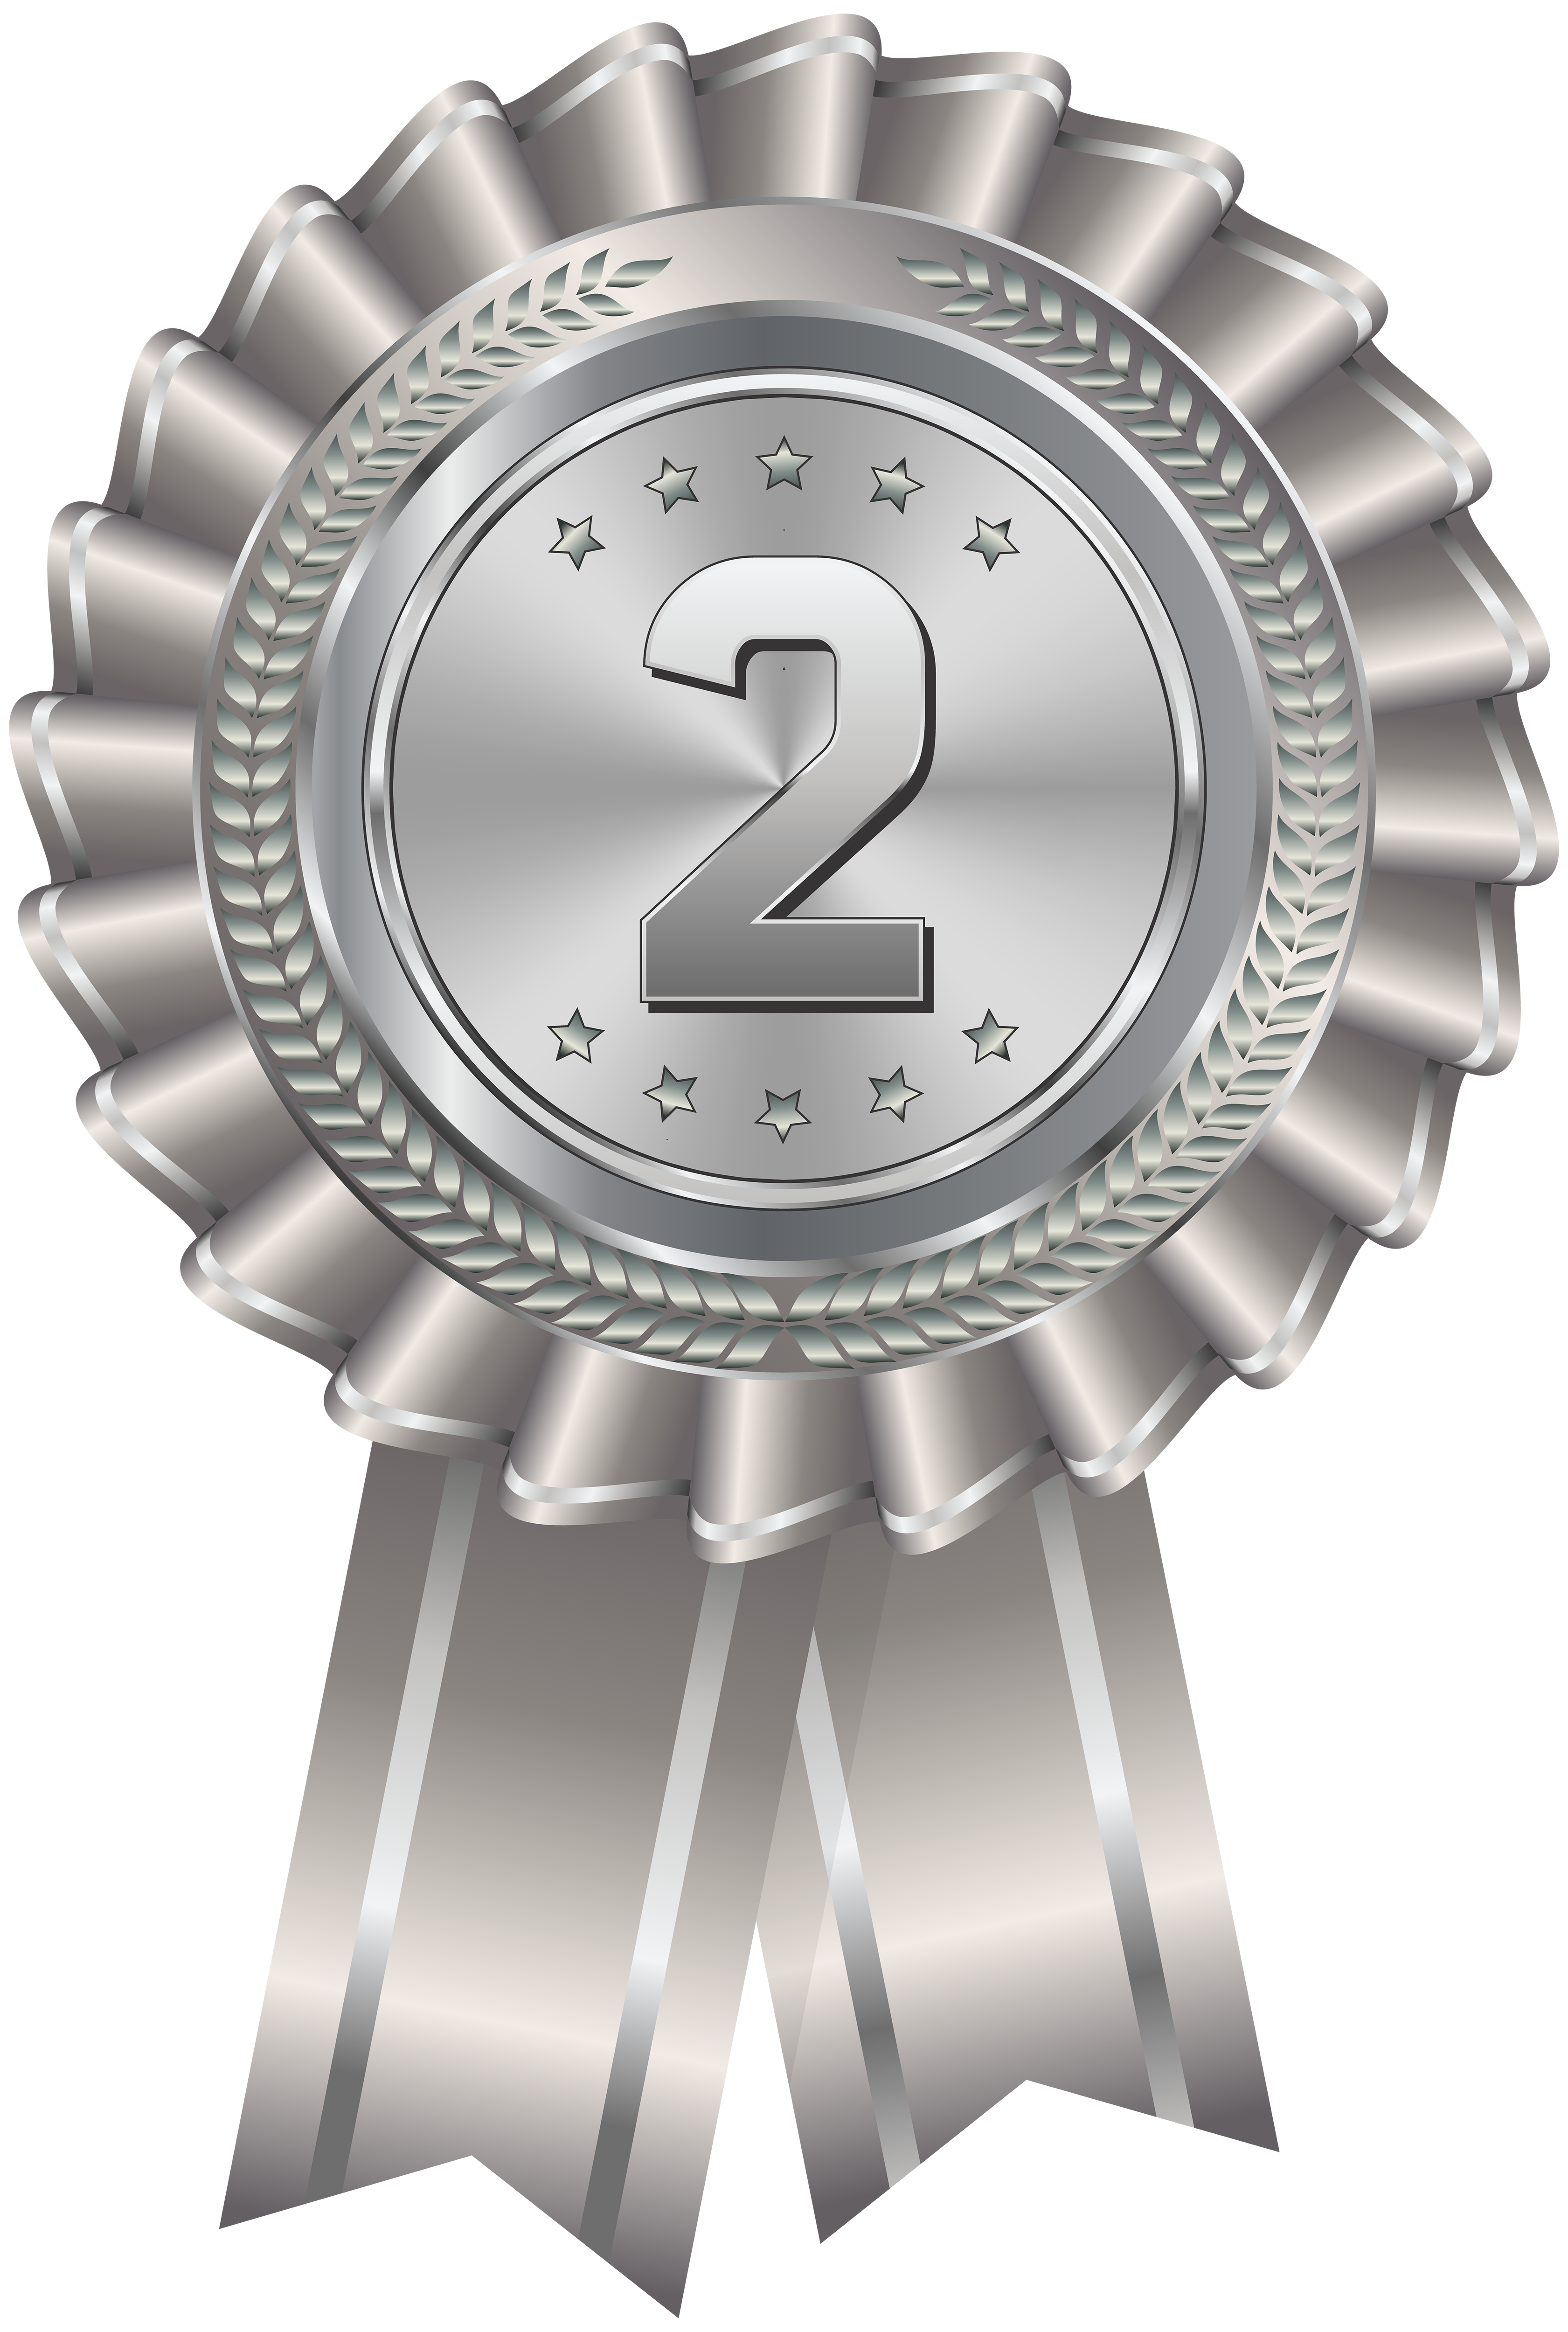 image library Transparent png clip art. Medal clipart silver.